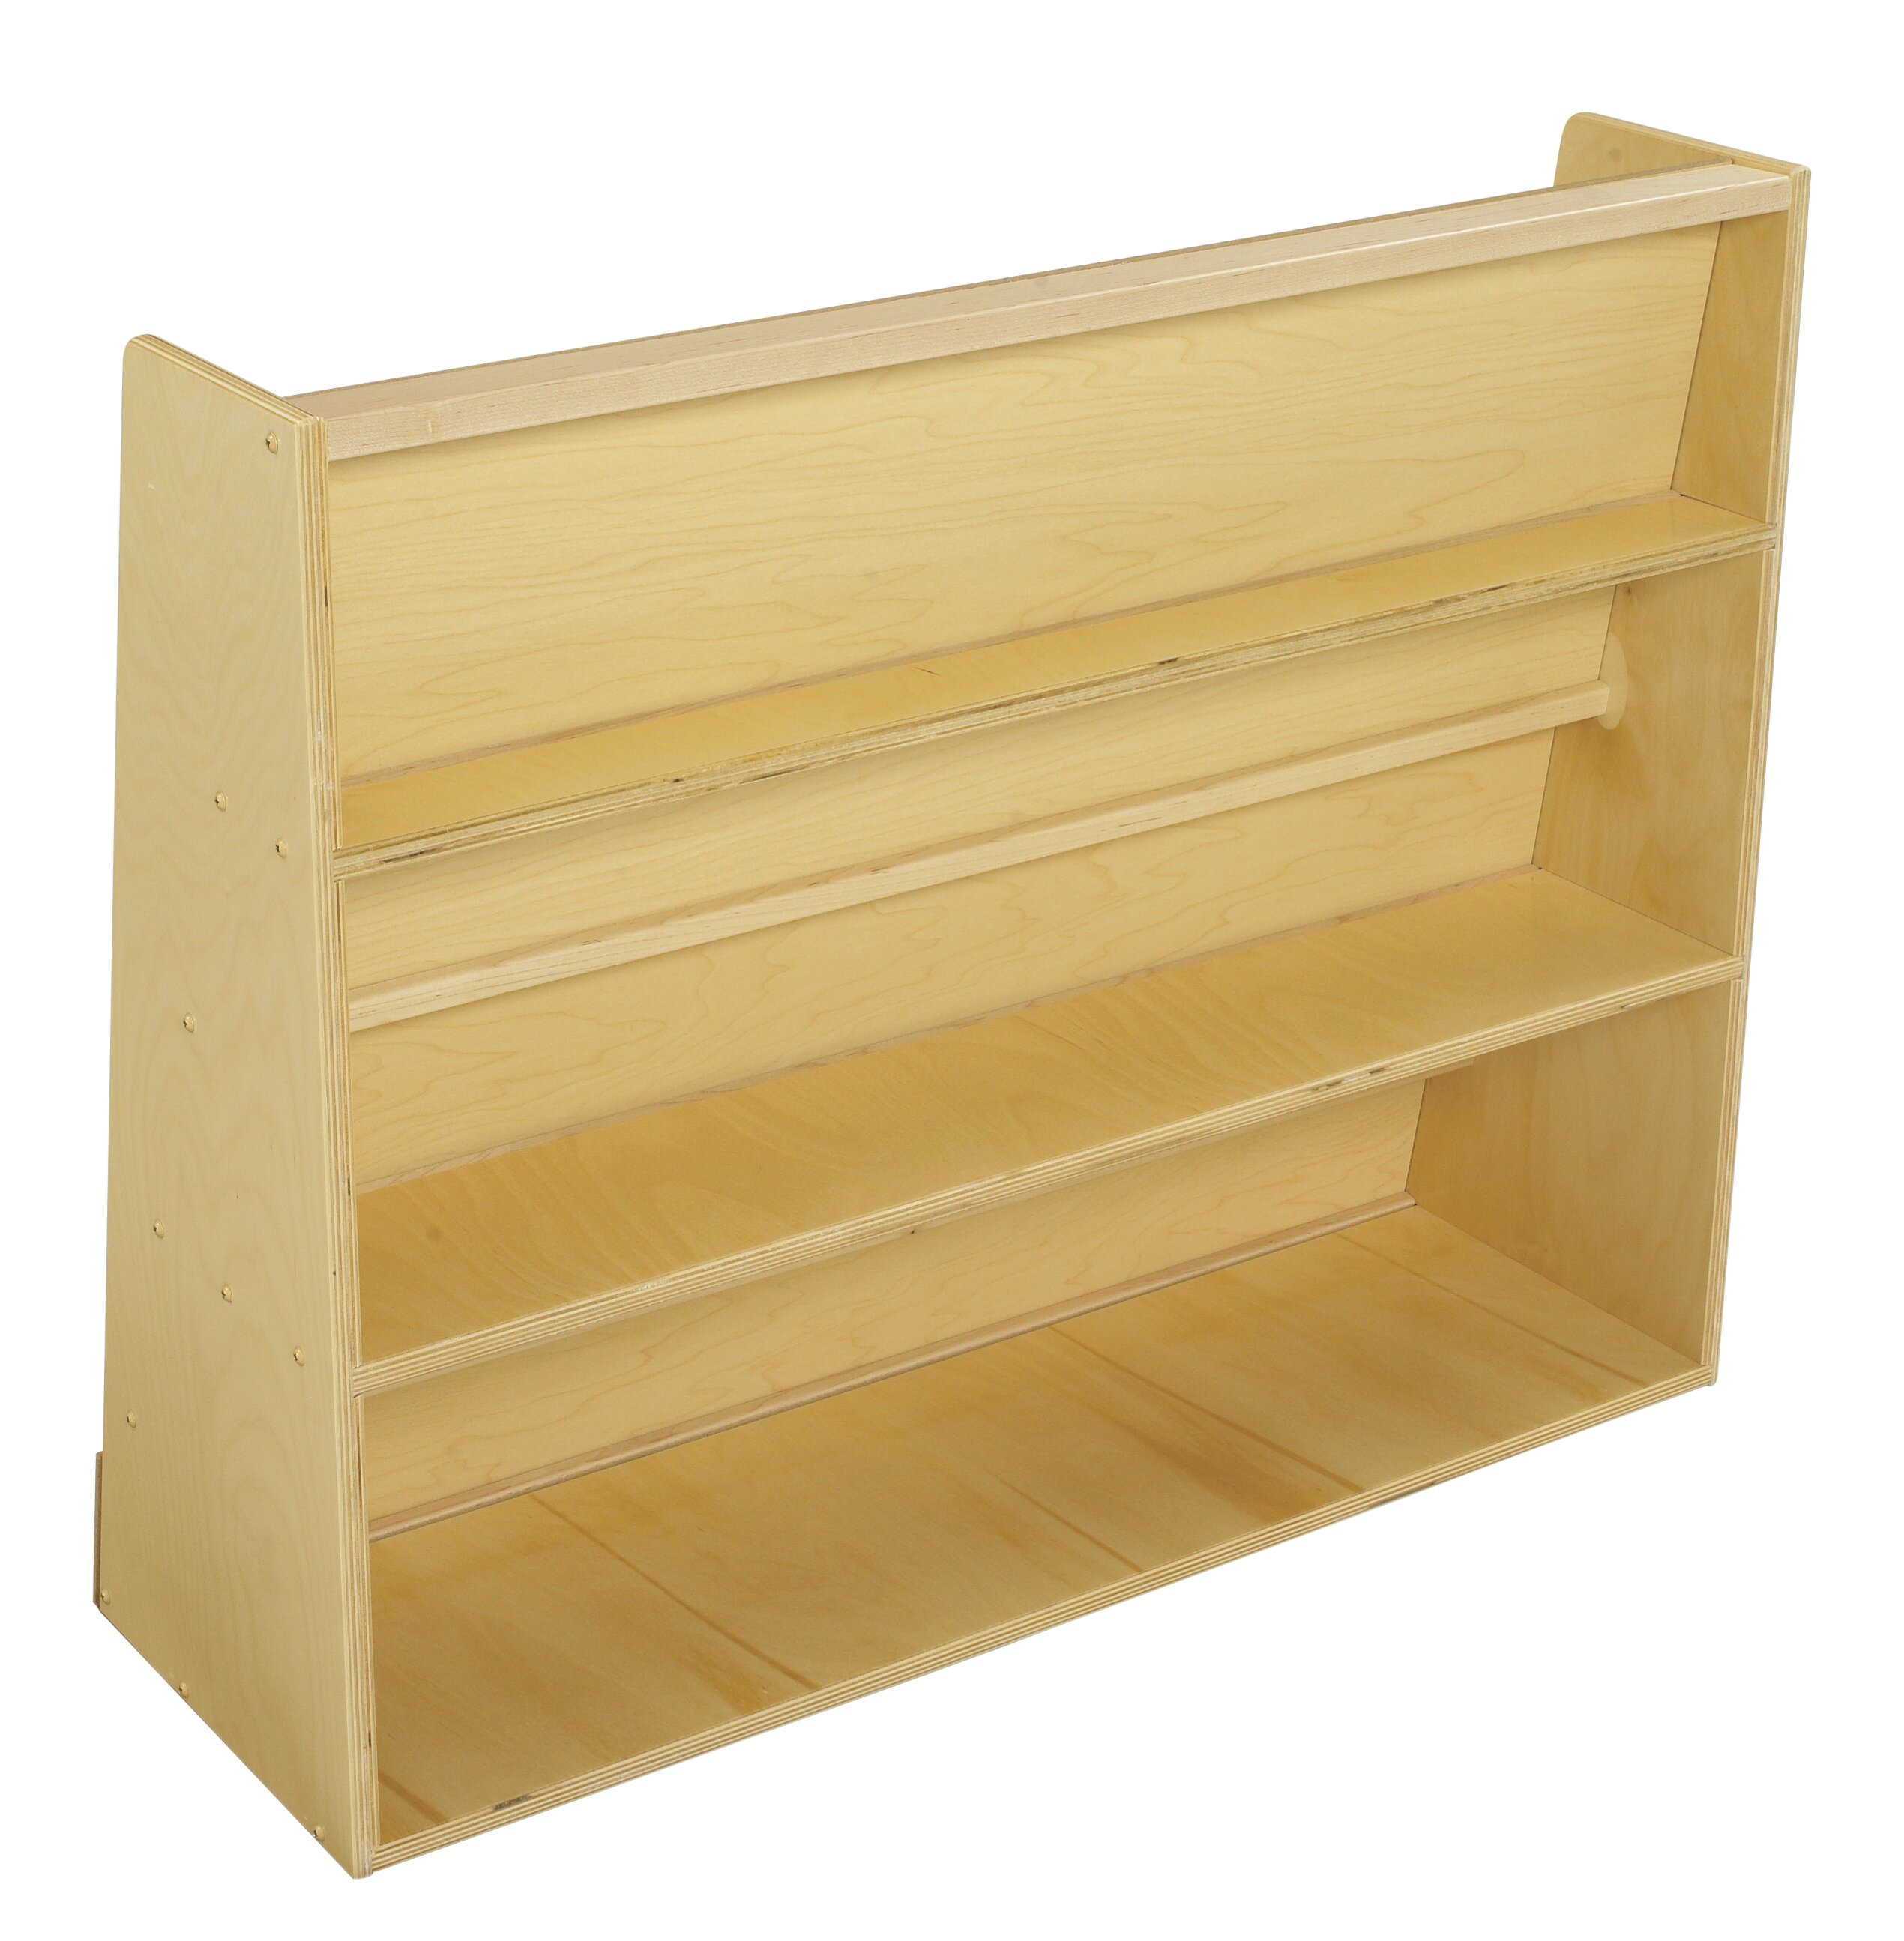 Book Display 5 Compartment Bookshelf With Rear Shelves